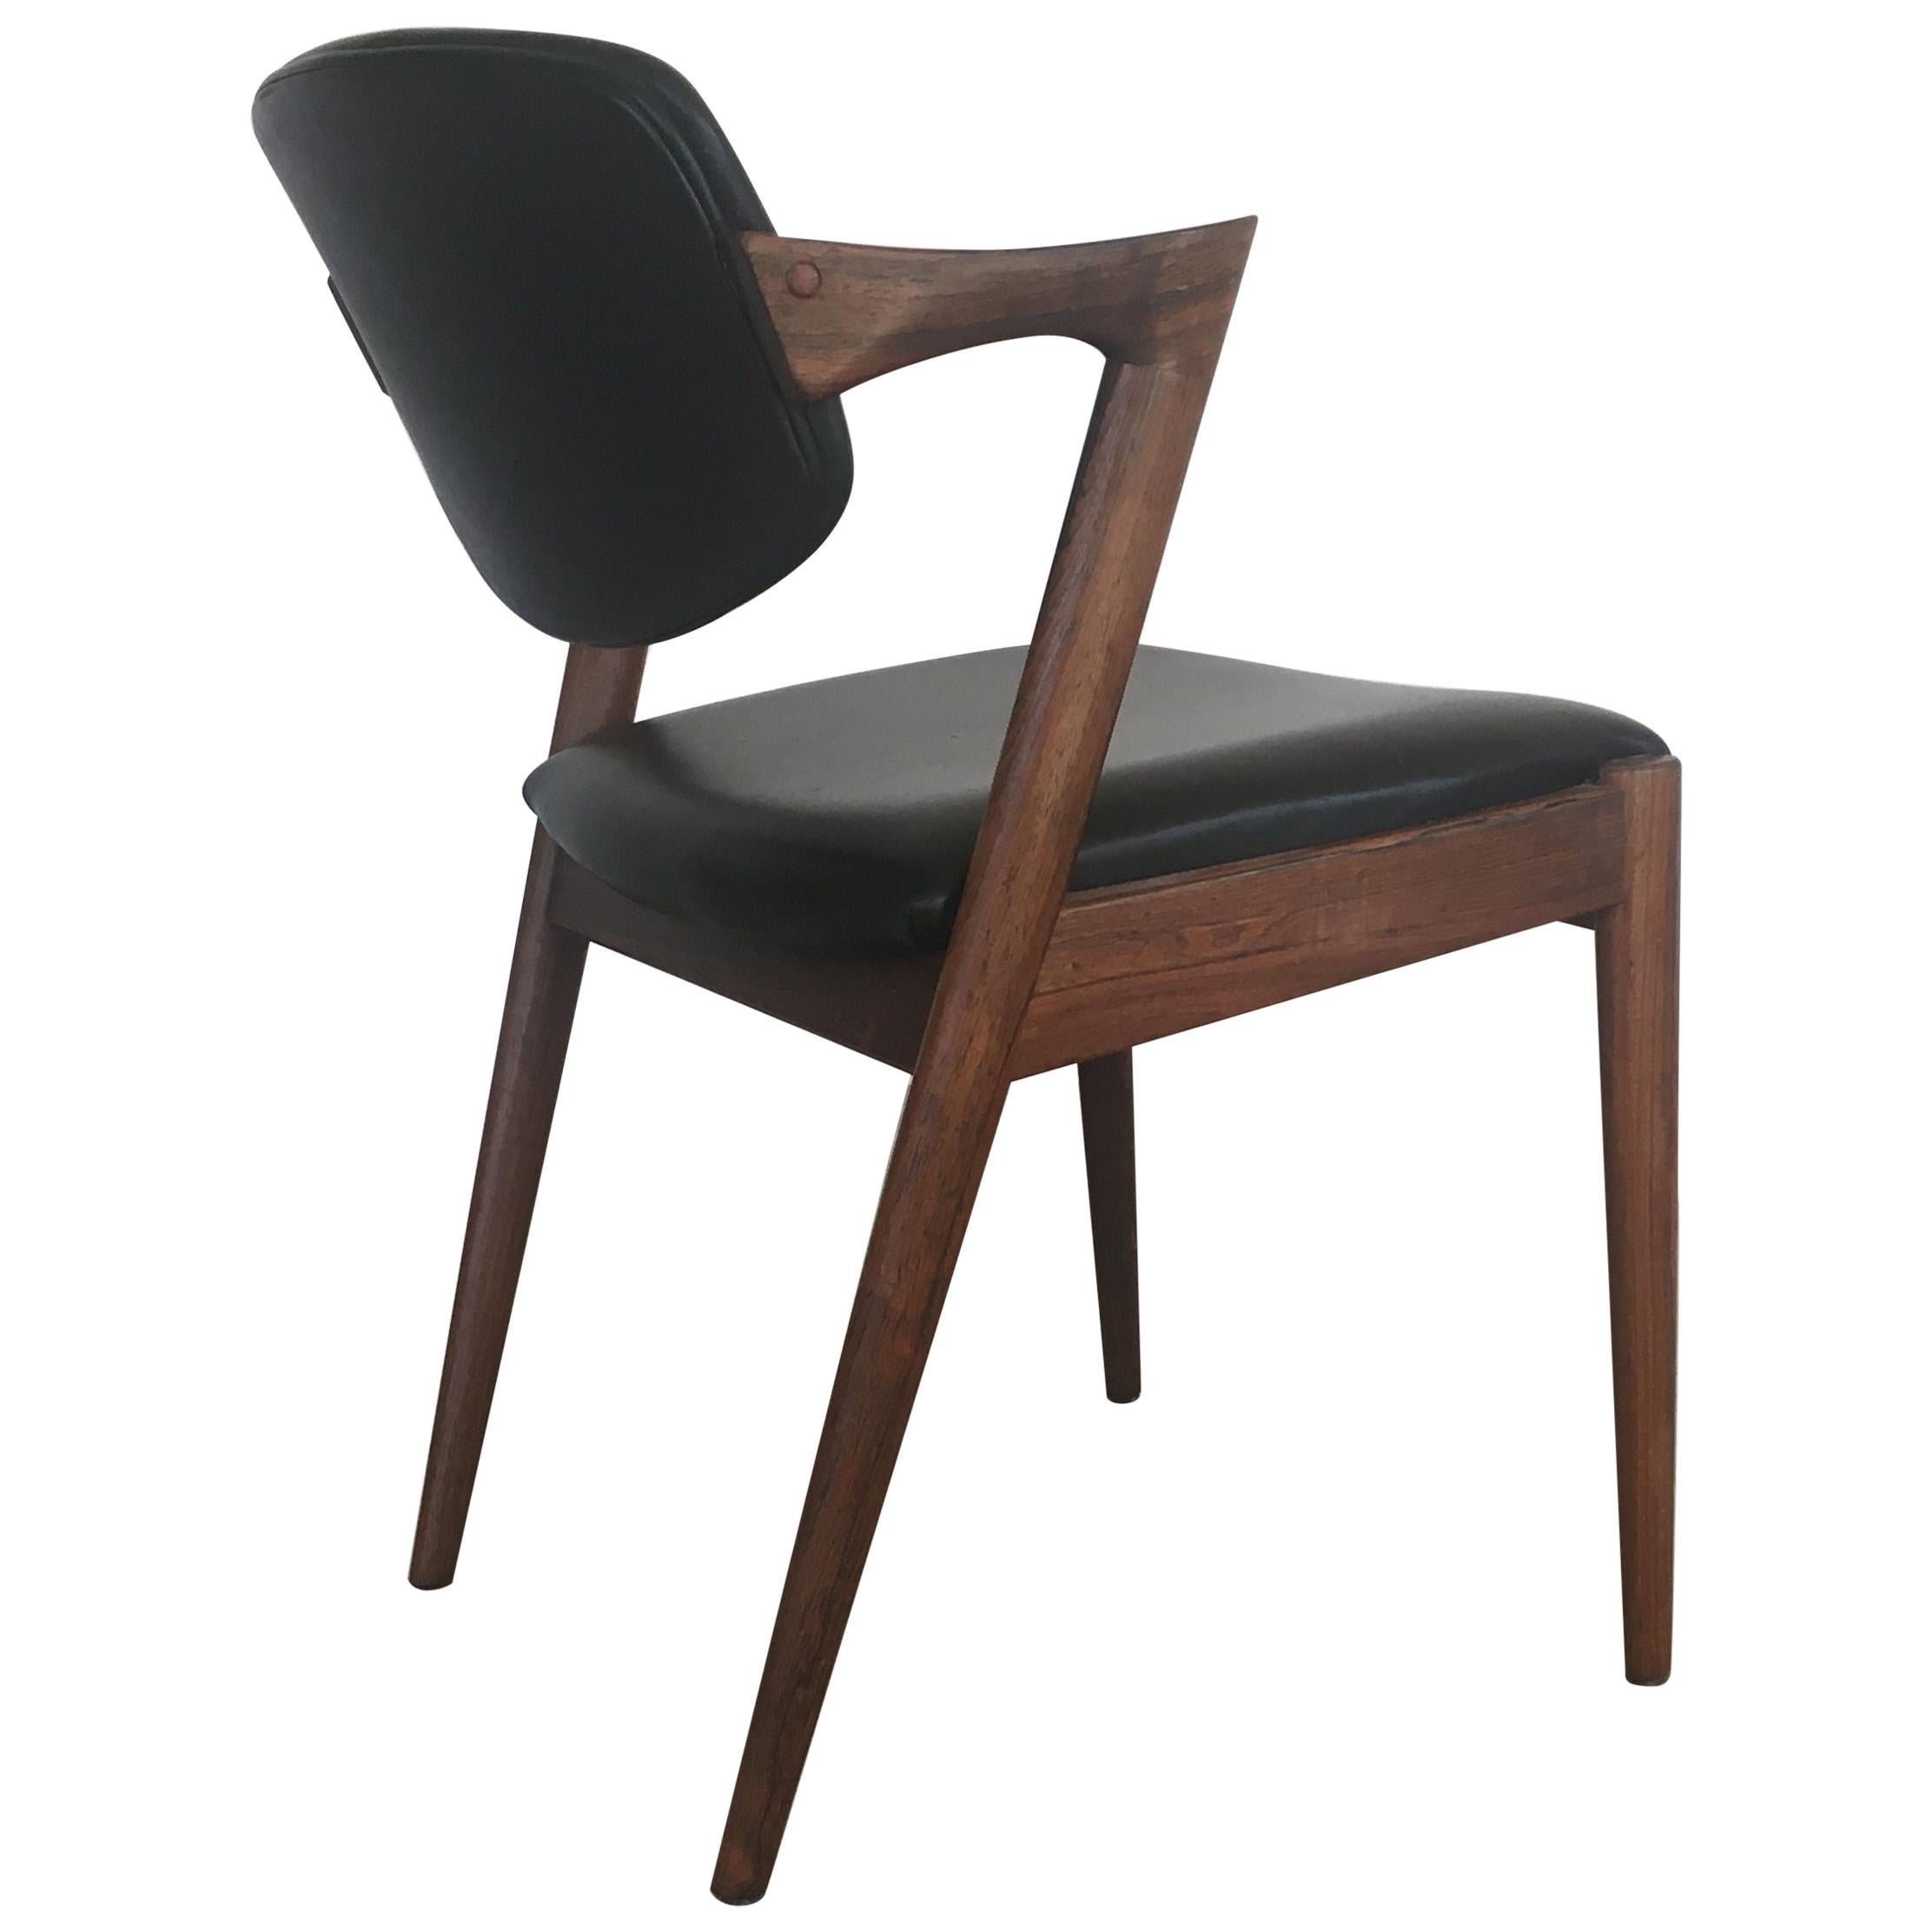 1960s Kai Kristiansen Fully Restored and Reupholstered Rosewood Dining Chairs